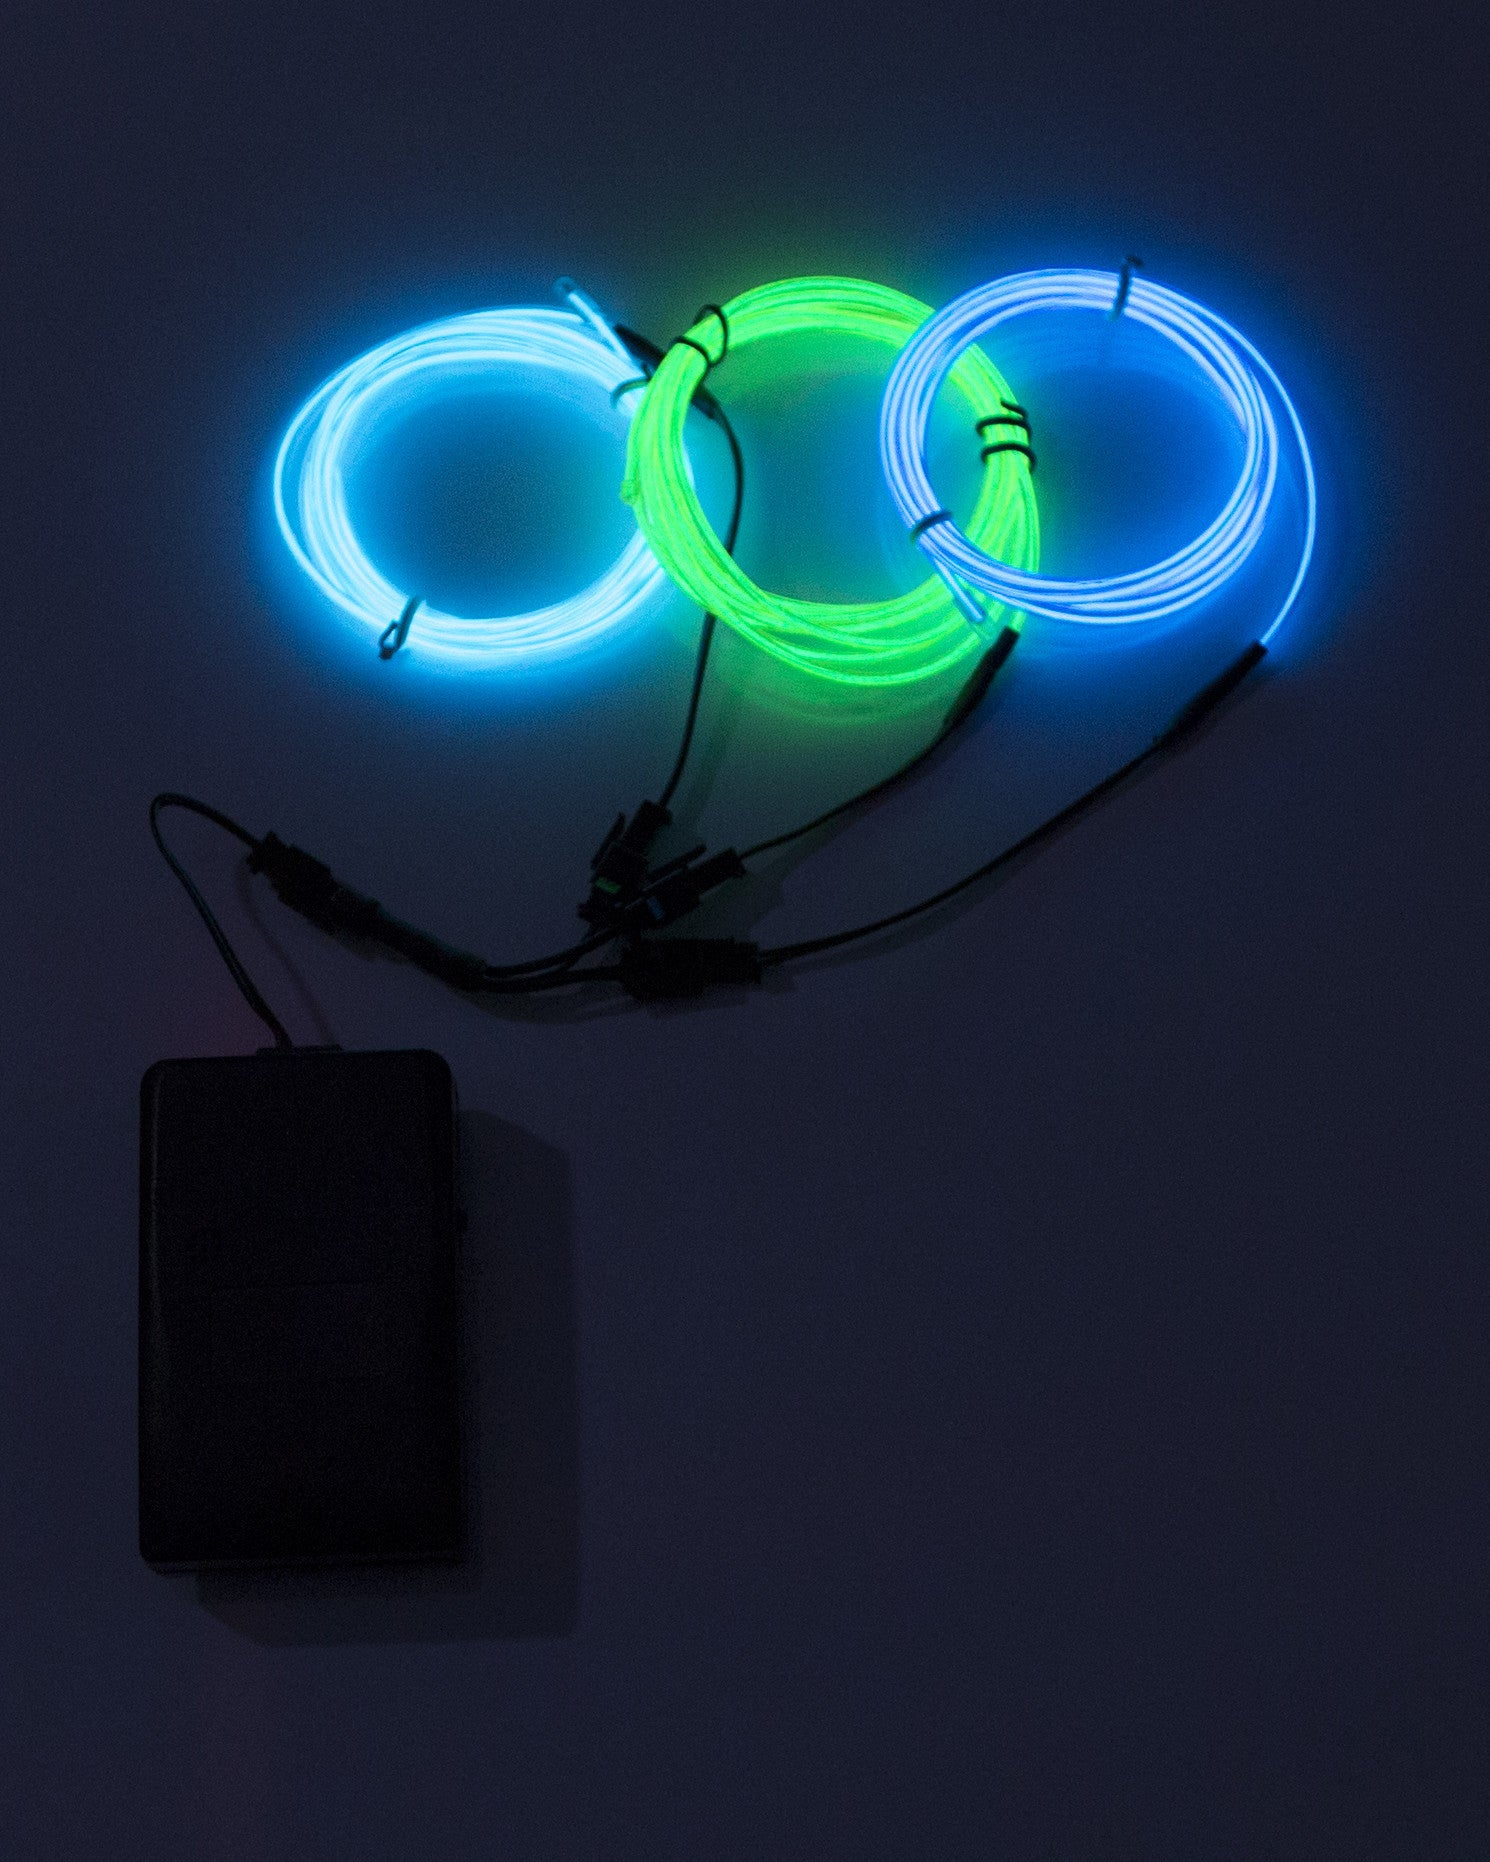 Three Line El Wire Kit with Sound Responsive Battery Pack - Electric Styles | World's Number 1 Light Up Shoe Store - {product_type}} - Blue, Lime Green, Aqua - 3